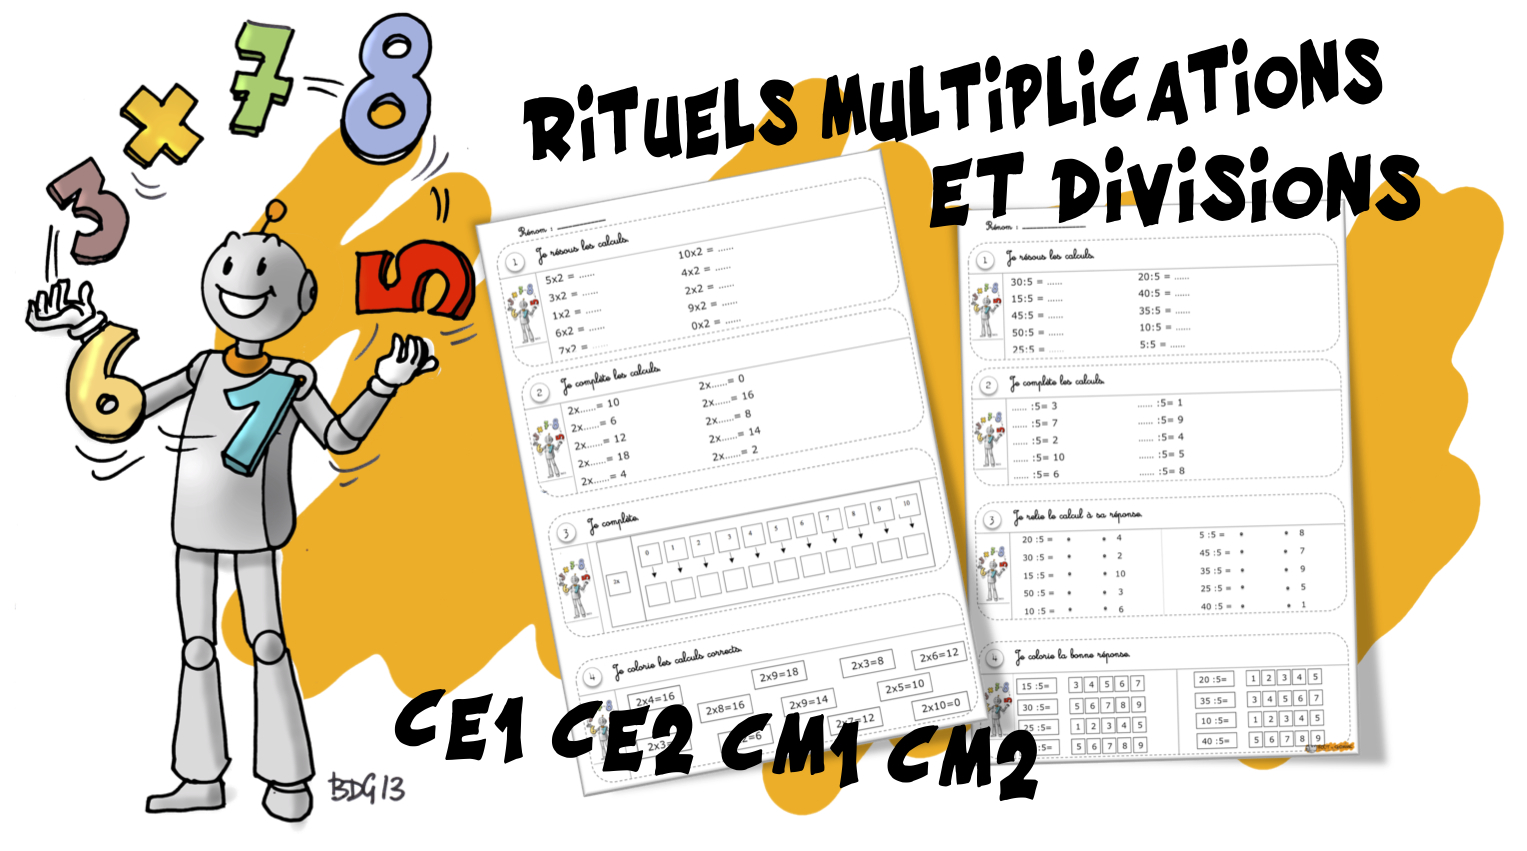 Jeu Table De Multiplication Ce1 Rituels Maths Multiplications Et Divisions Bout De Gomme